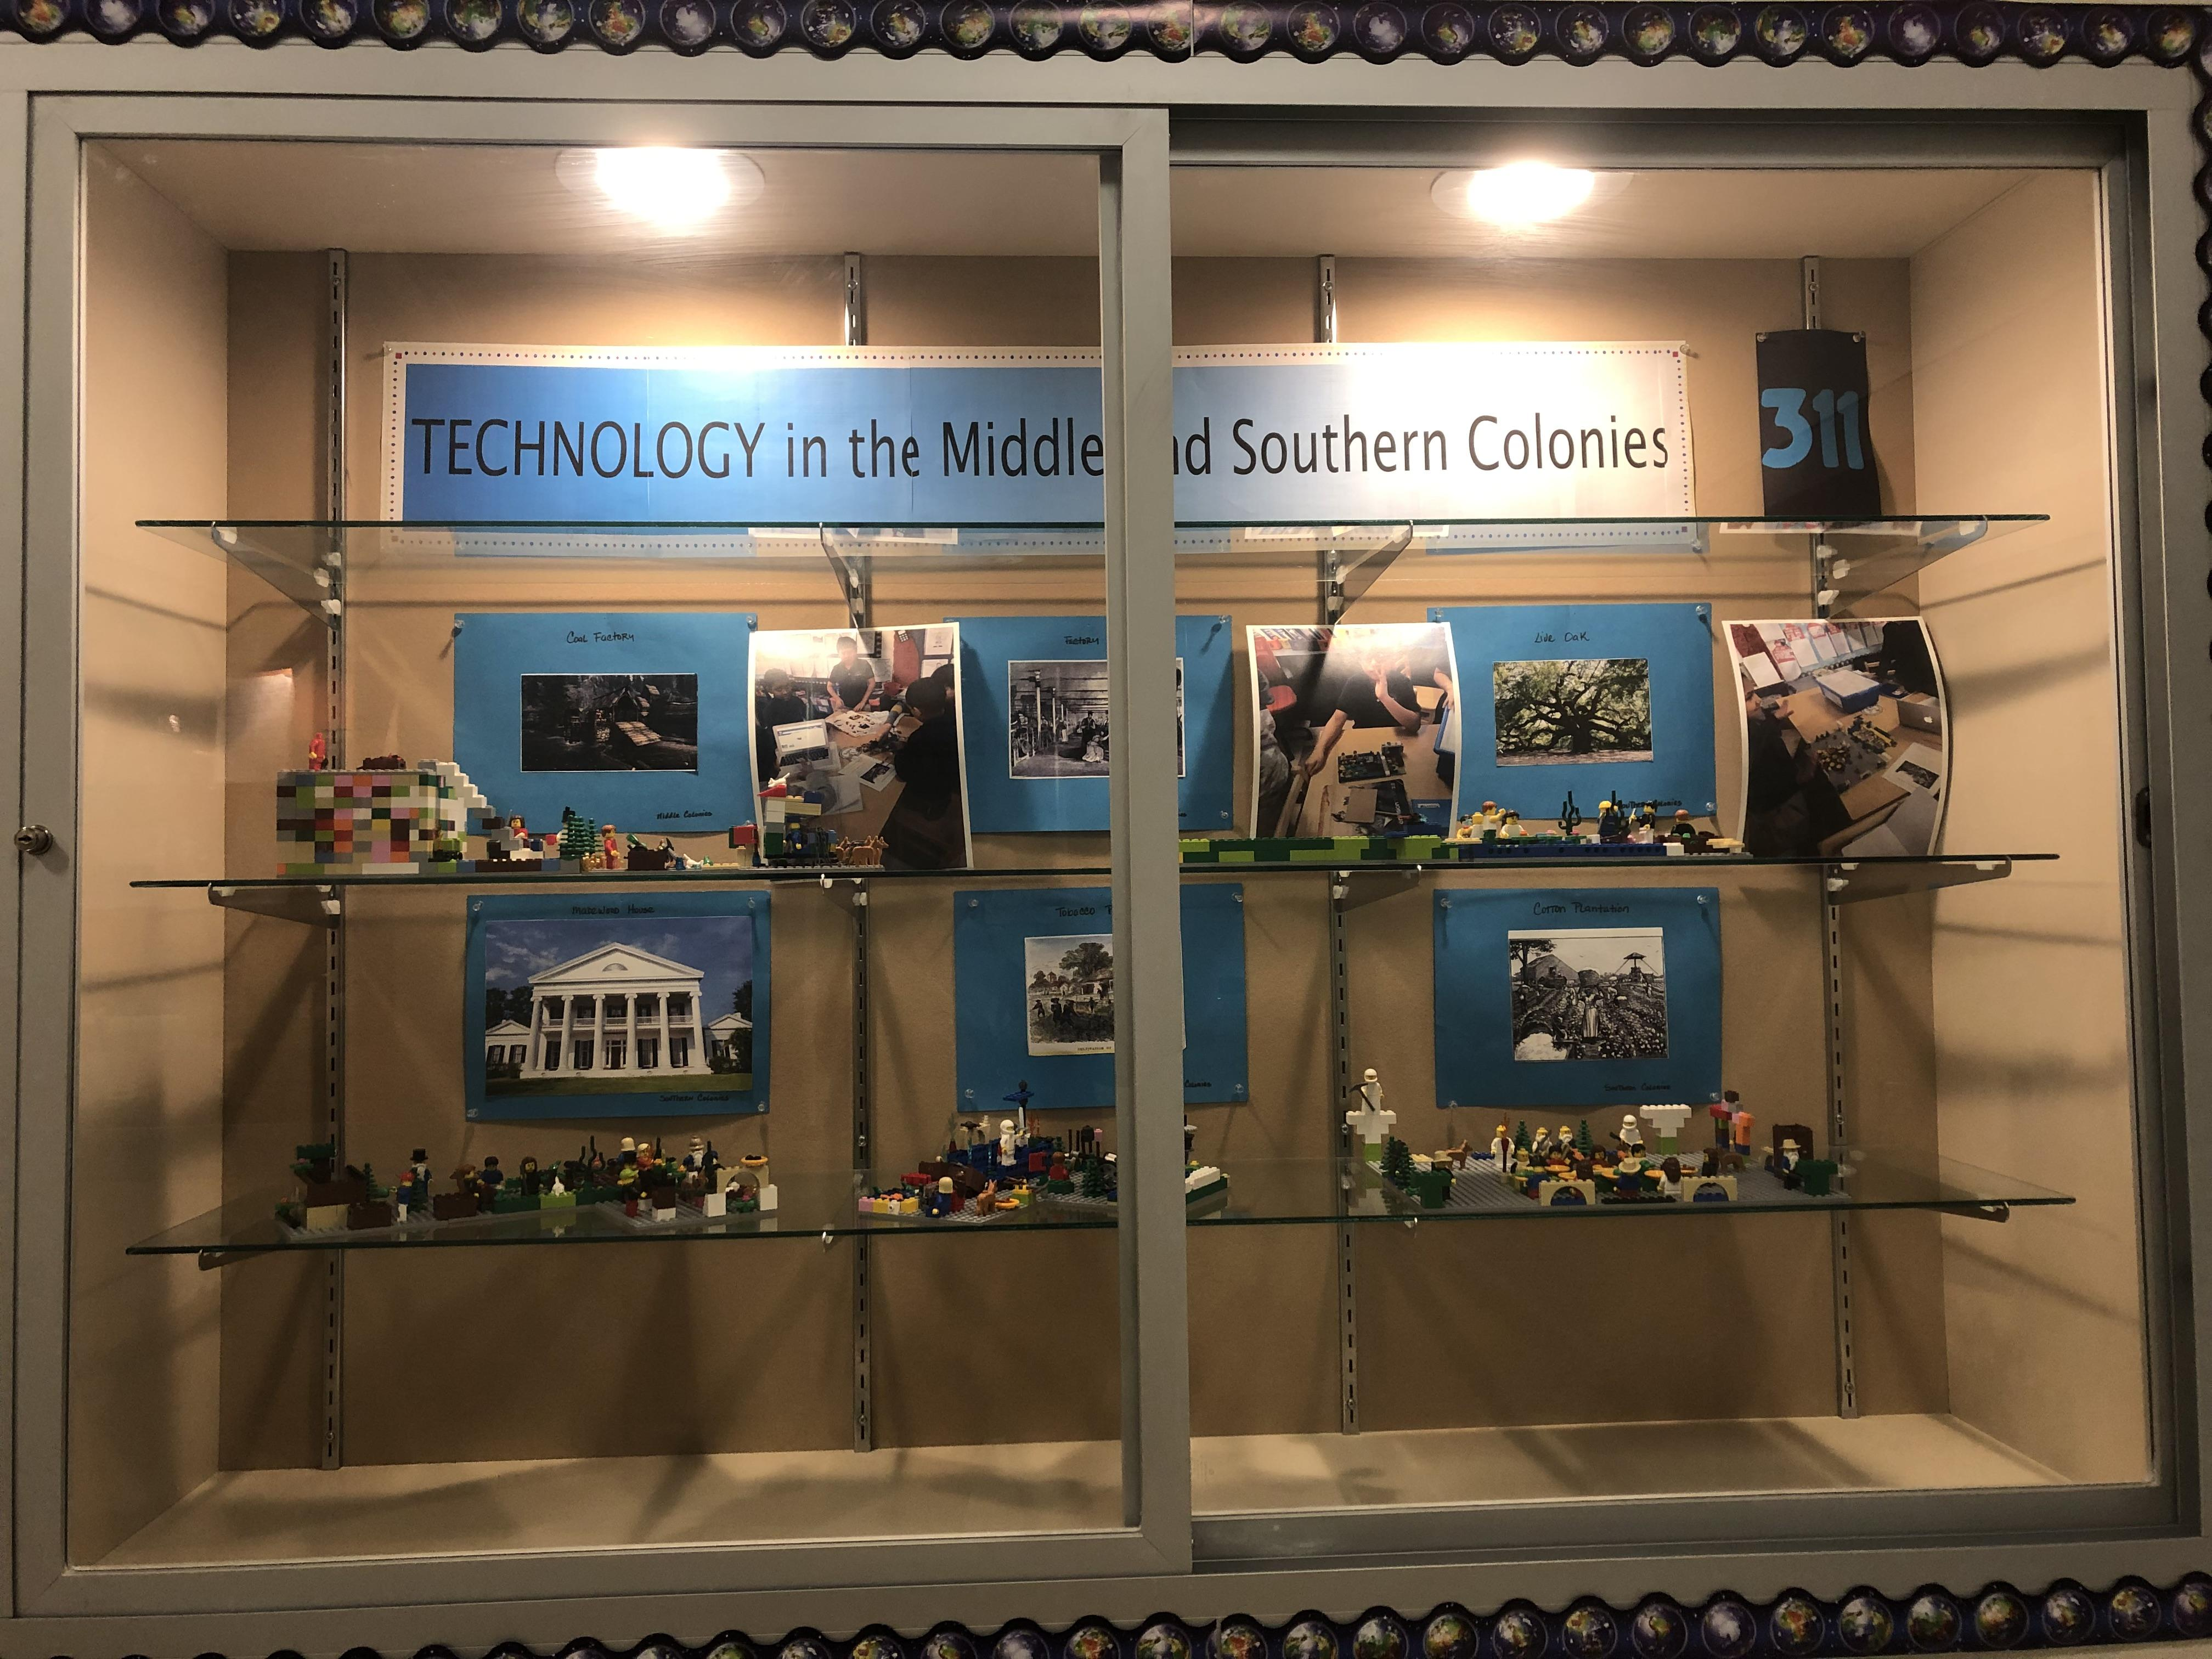 technology in the middle & southern colonies display